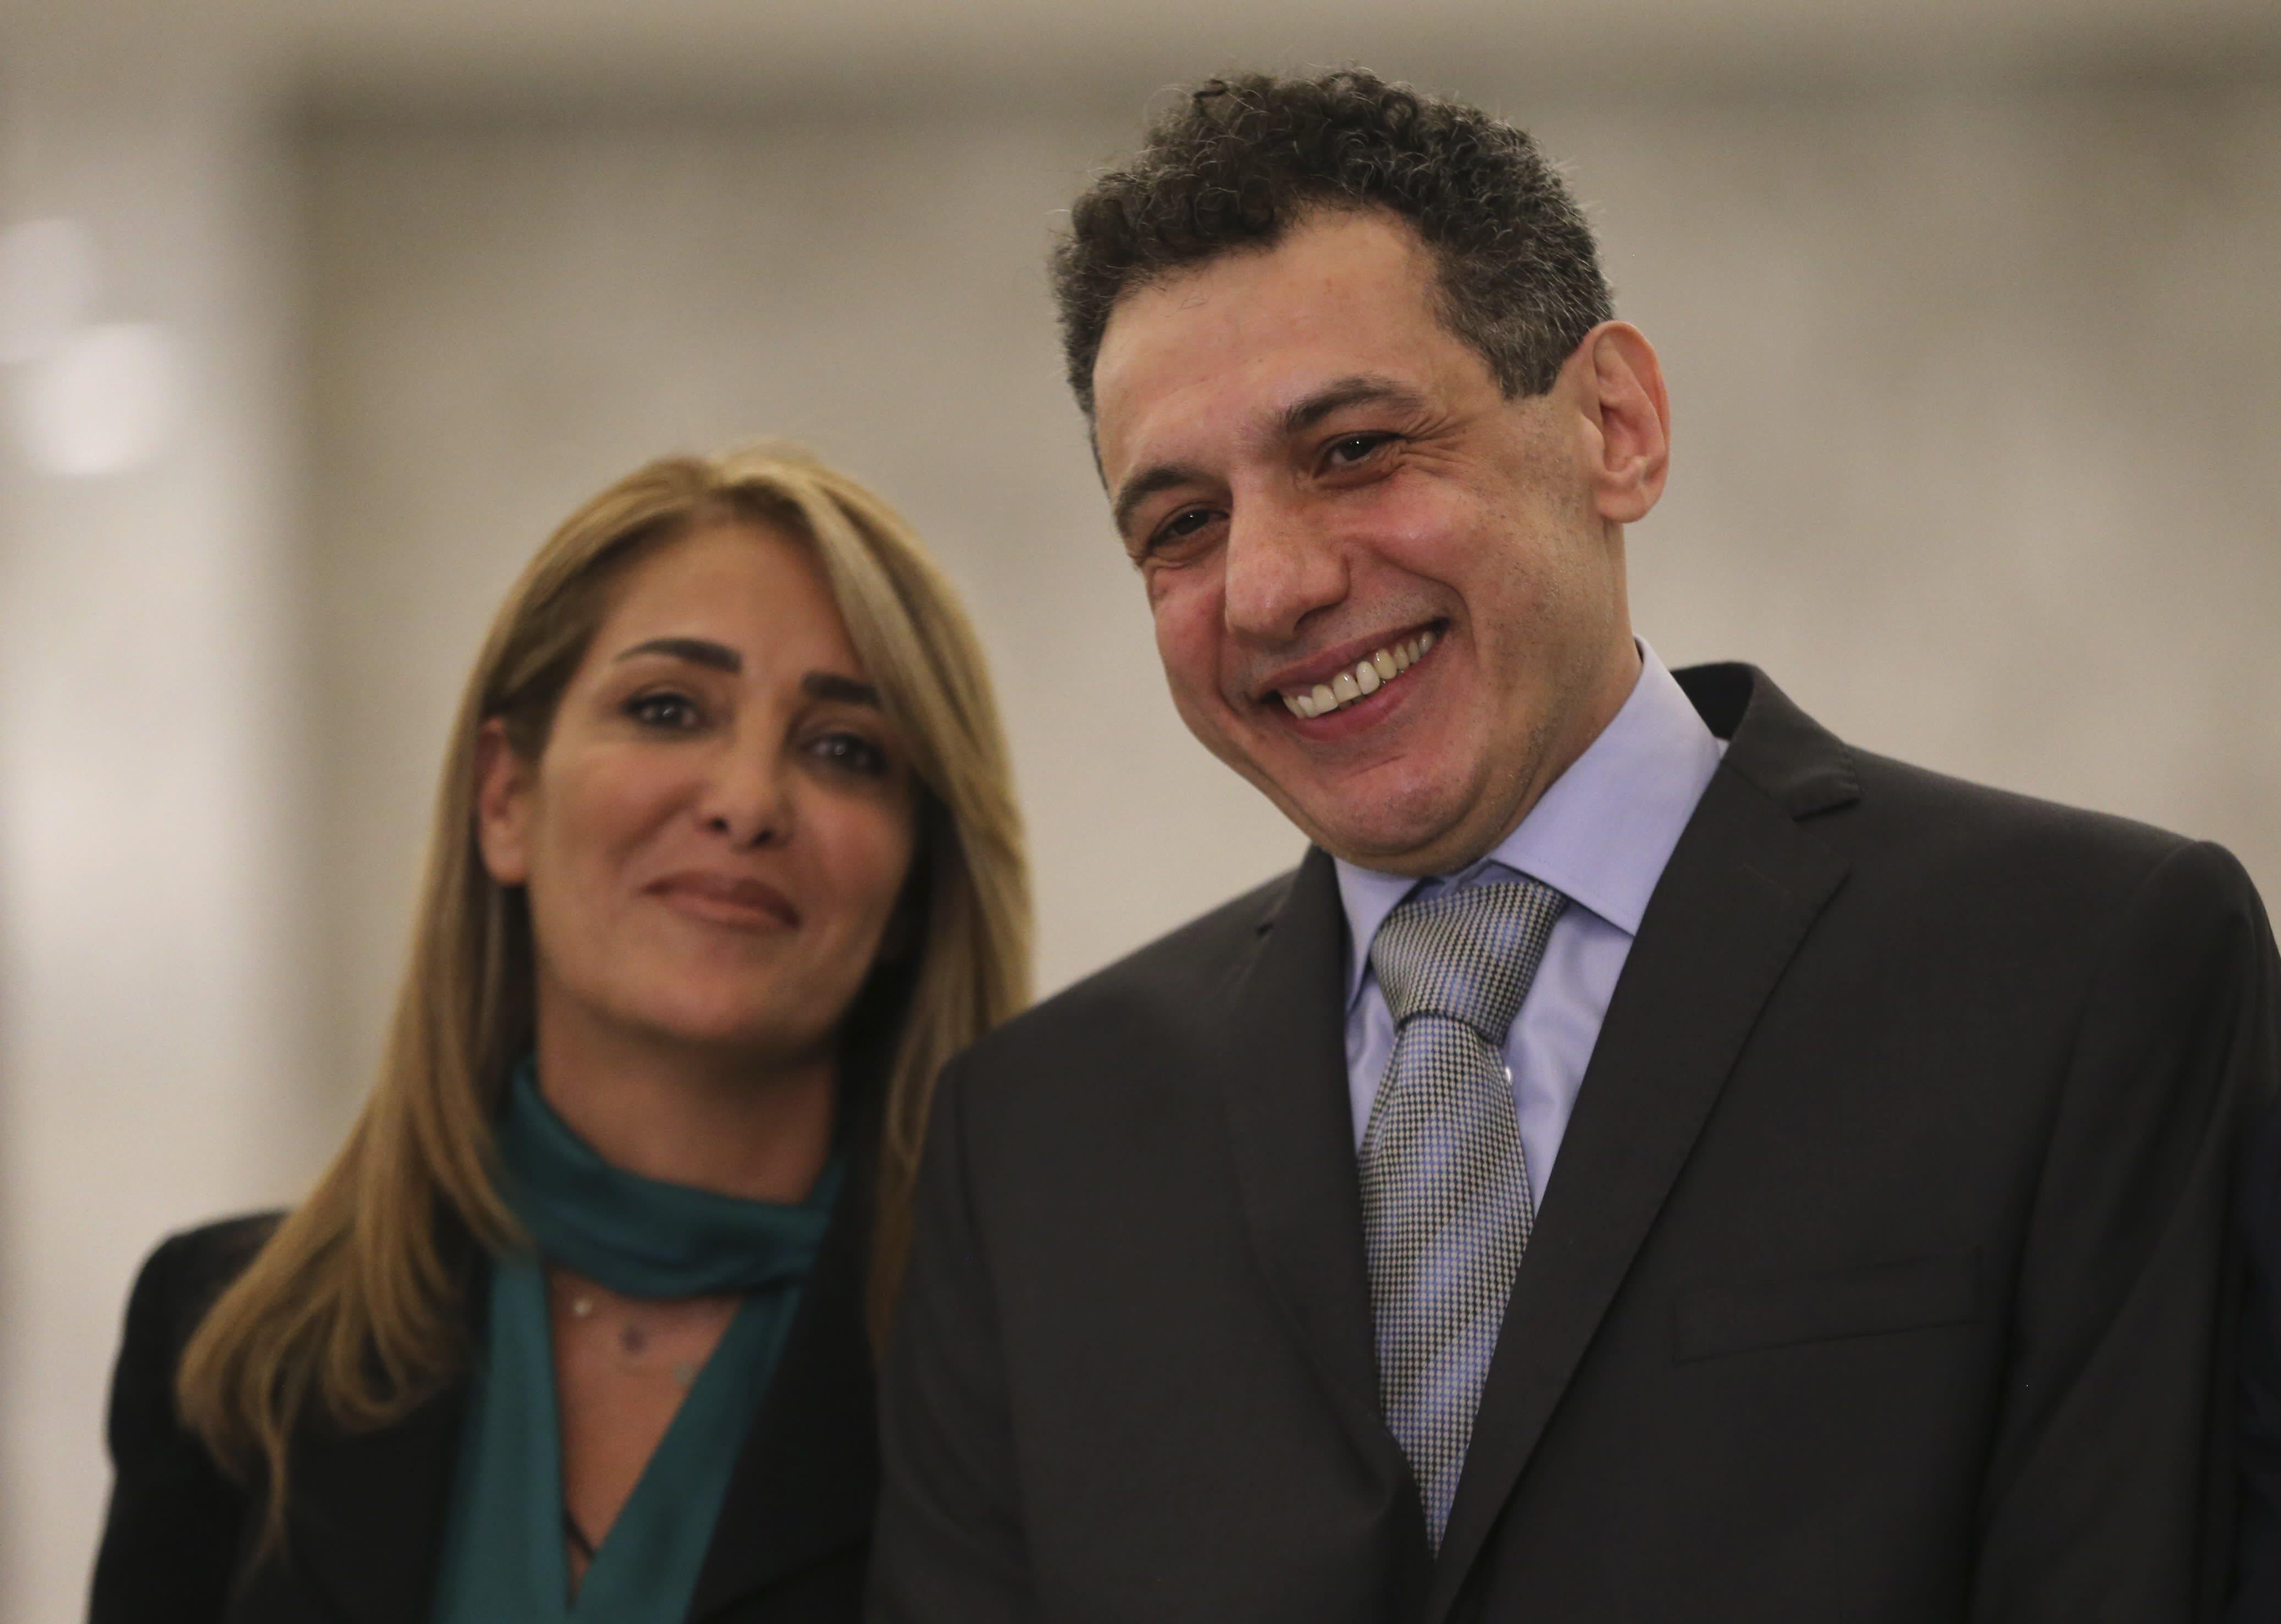 Nizar Zakka, right, a Lebanese citizen and U.S. permanent resident, who was released in Tehran after nearly four years in jail on charges of spying, smiles as he stands next to his wife Ghinwa, at the presidential palace, in Baabda, east of Beirut, Tuesday, June 11, 2019. Zakka a Lebanese businessman was allowed to fly to Lebanon, a development that comes amid heightened tensions between Iran and the U.S. after President Donald Trump withdrew America from Tehran's nuclear deal with world powers. (AP Photo/Hussein Malla)